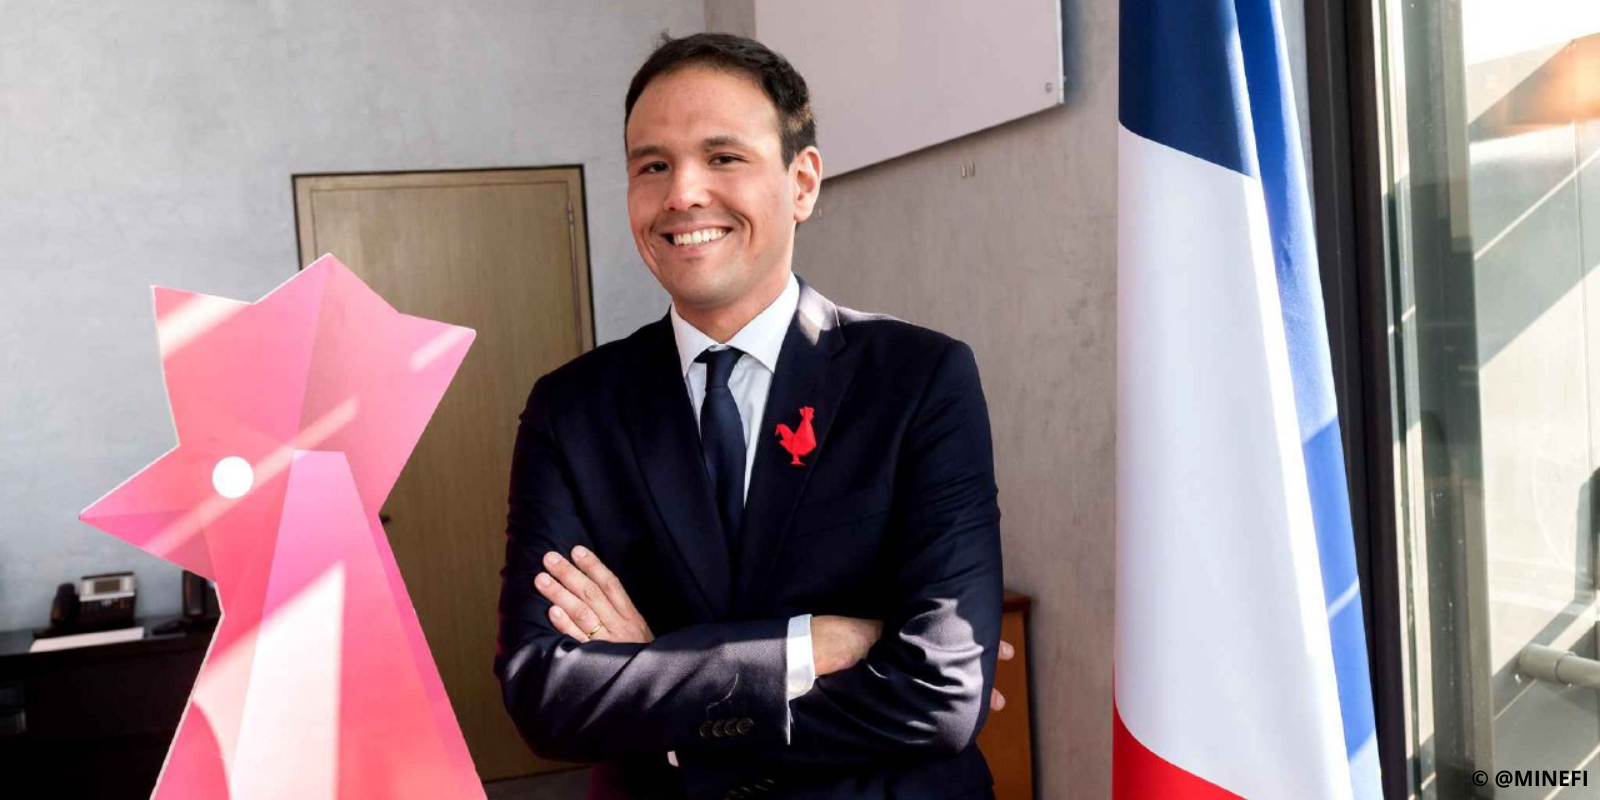 Interview with Cédric O, Secretary of State for the French Digital Transition